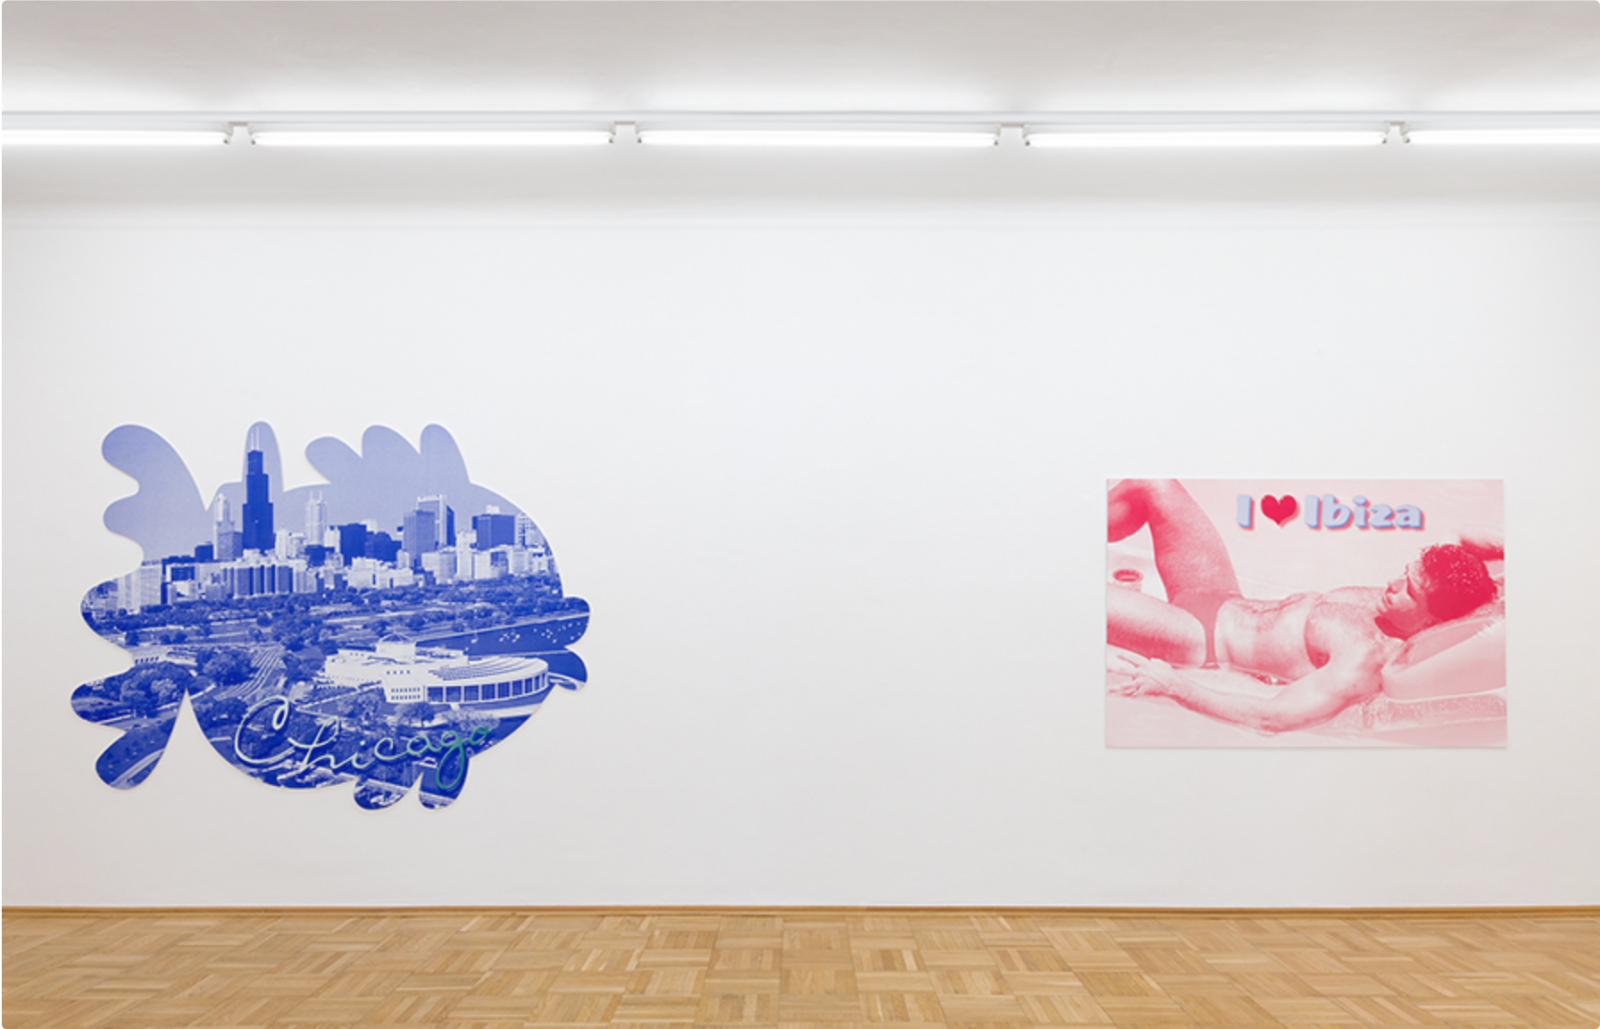 "Katharina Fritsch /1. Postkarte (Chicago) /(2001/2002, left) /7. Postkarte (Ibiza)/ (2007, right) Photo: Nic Tenwinggenhorn; Courtesy Matthew Marks Gallery  ""Chicago, Ibiza etc."" curated by Robert Fleck, Galerie nächst St. Stephan  Rosemarie Schwarzwälder"